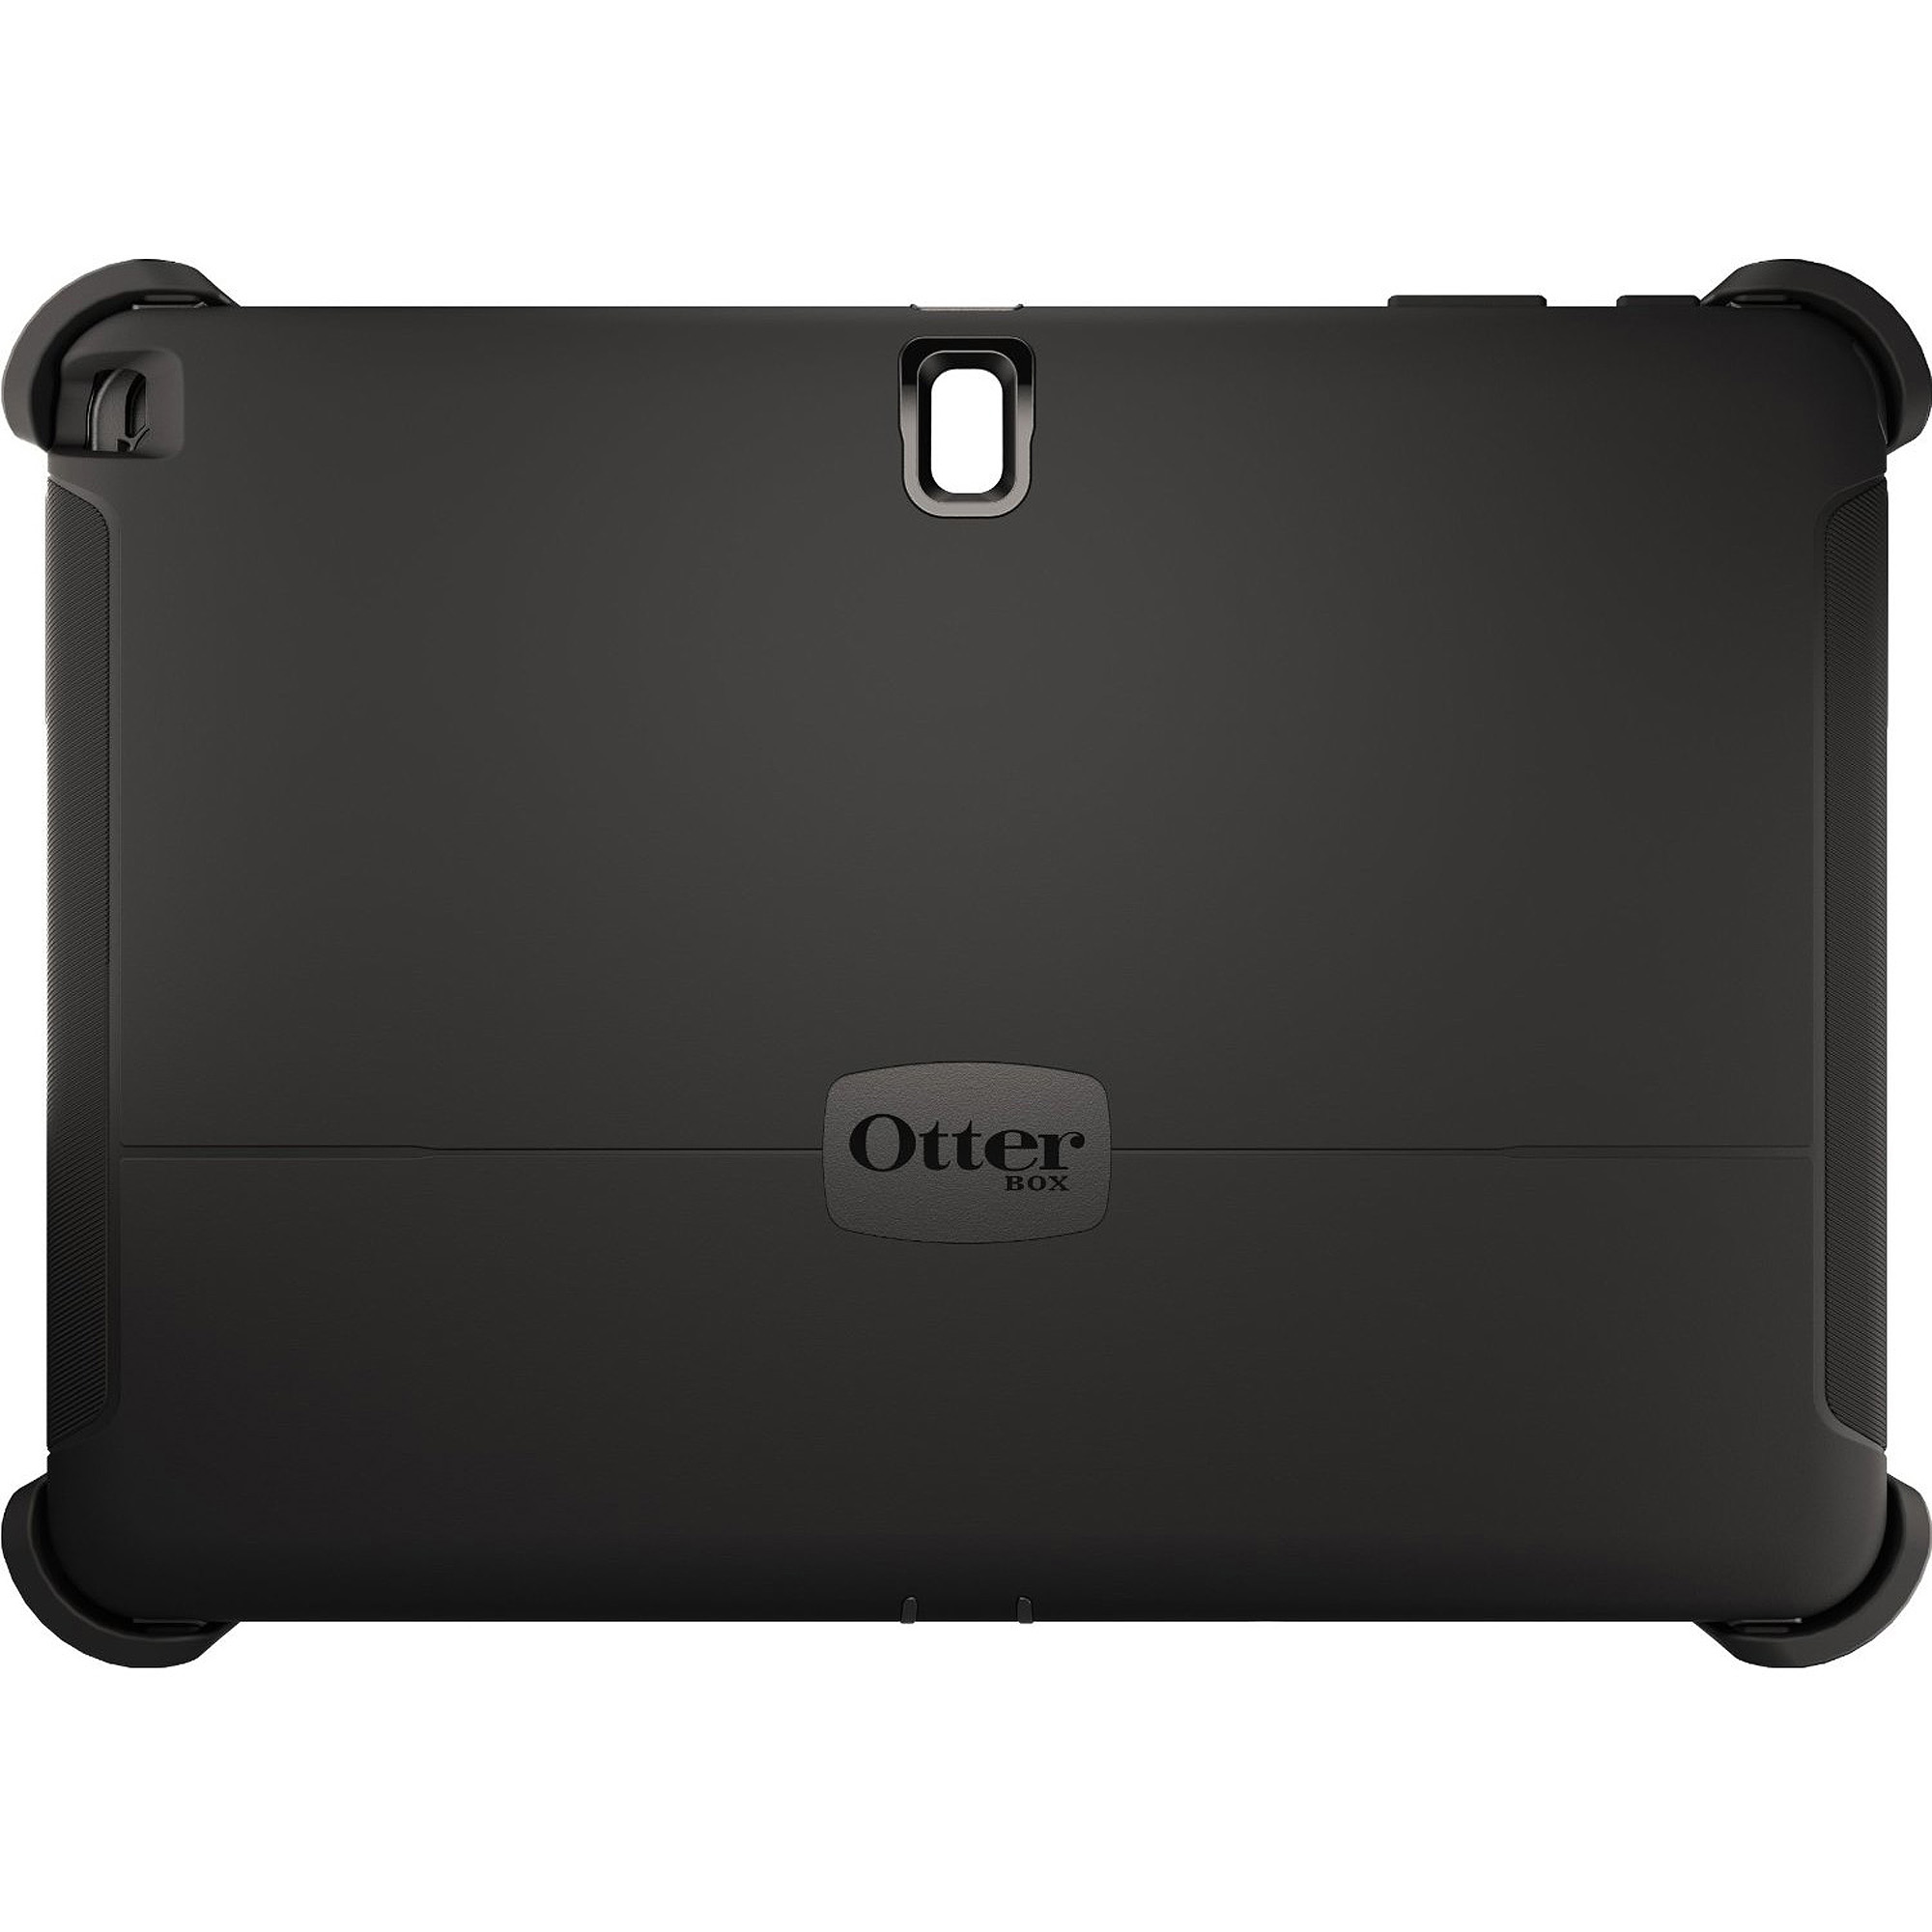 detailed pictures e82b5 64acb OtterBox 77-40507 Defender Series Cover with Built-in Screen Protector for  Samsung 10.1-Inch Galaxy Tab Pro / Galaxy Note 10.1-Inch 2014 Edition - ...